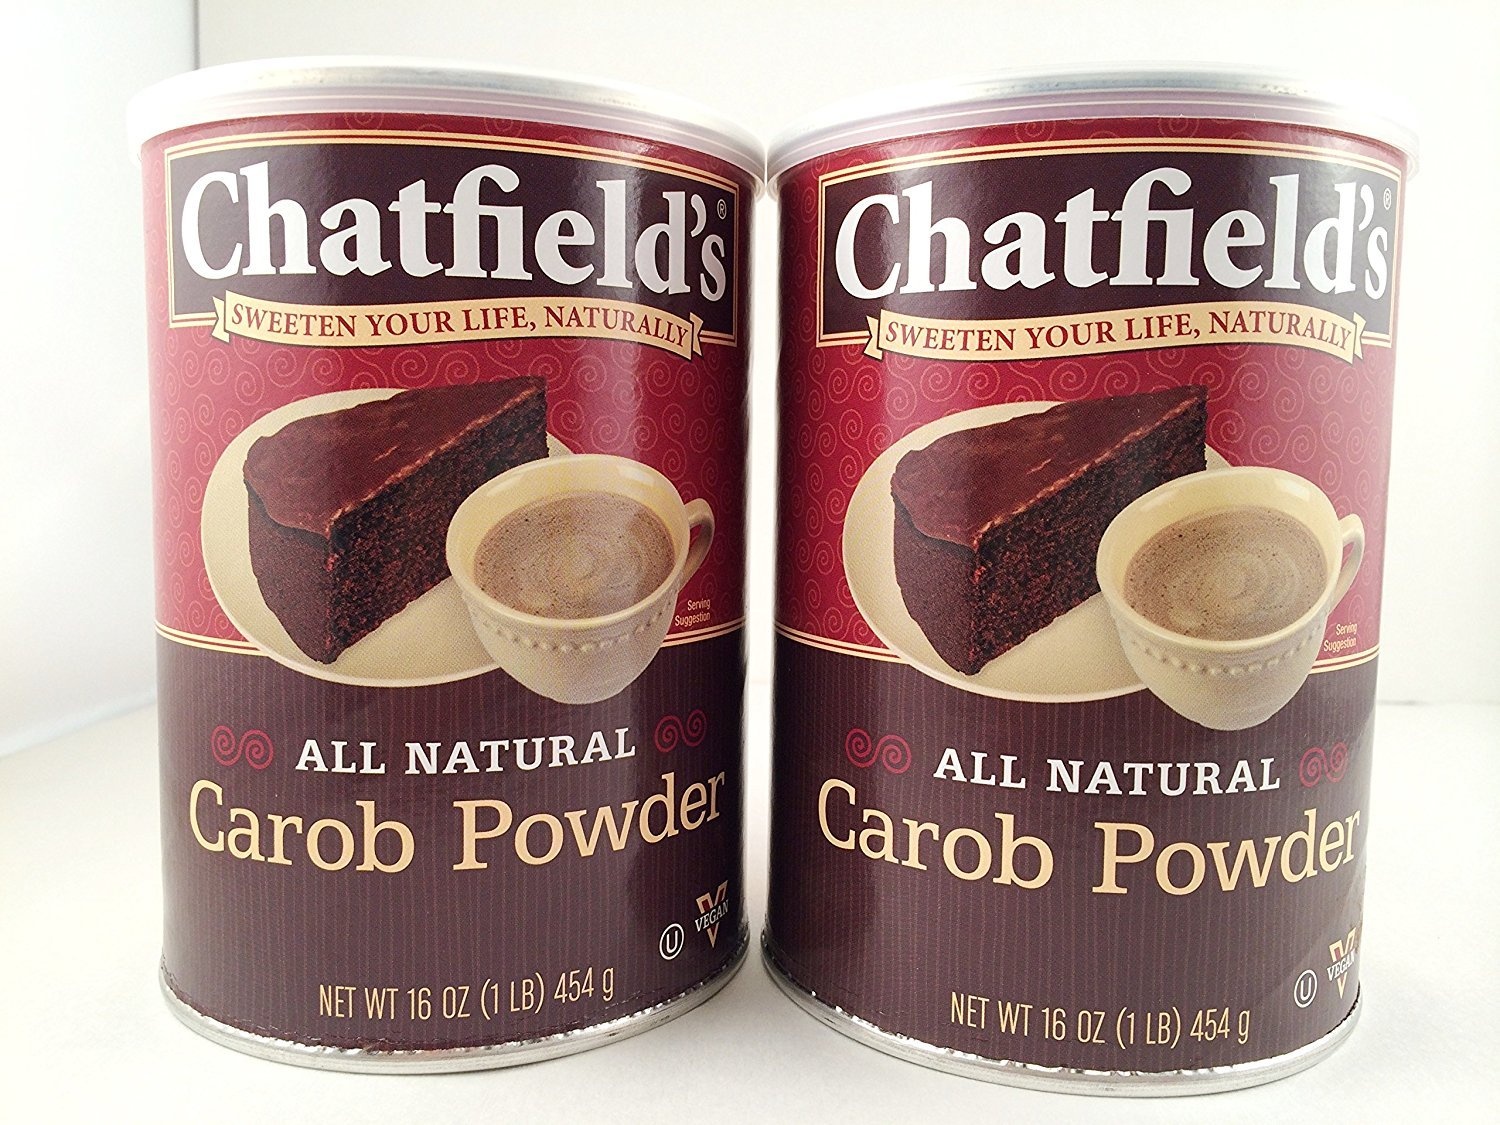 Chatfield's All Natural Carob Powder - Value Pack of Two 1 LB. Cans by Chatfields